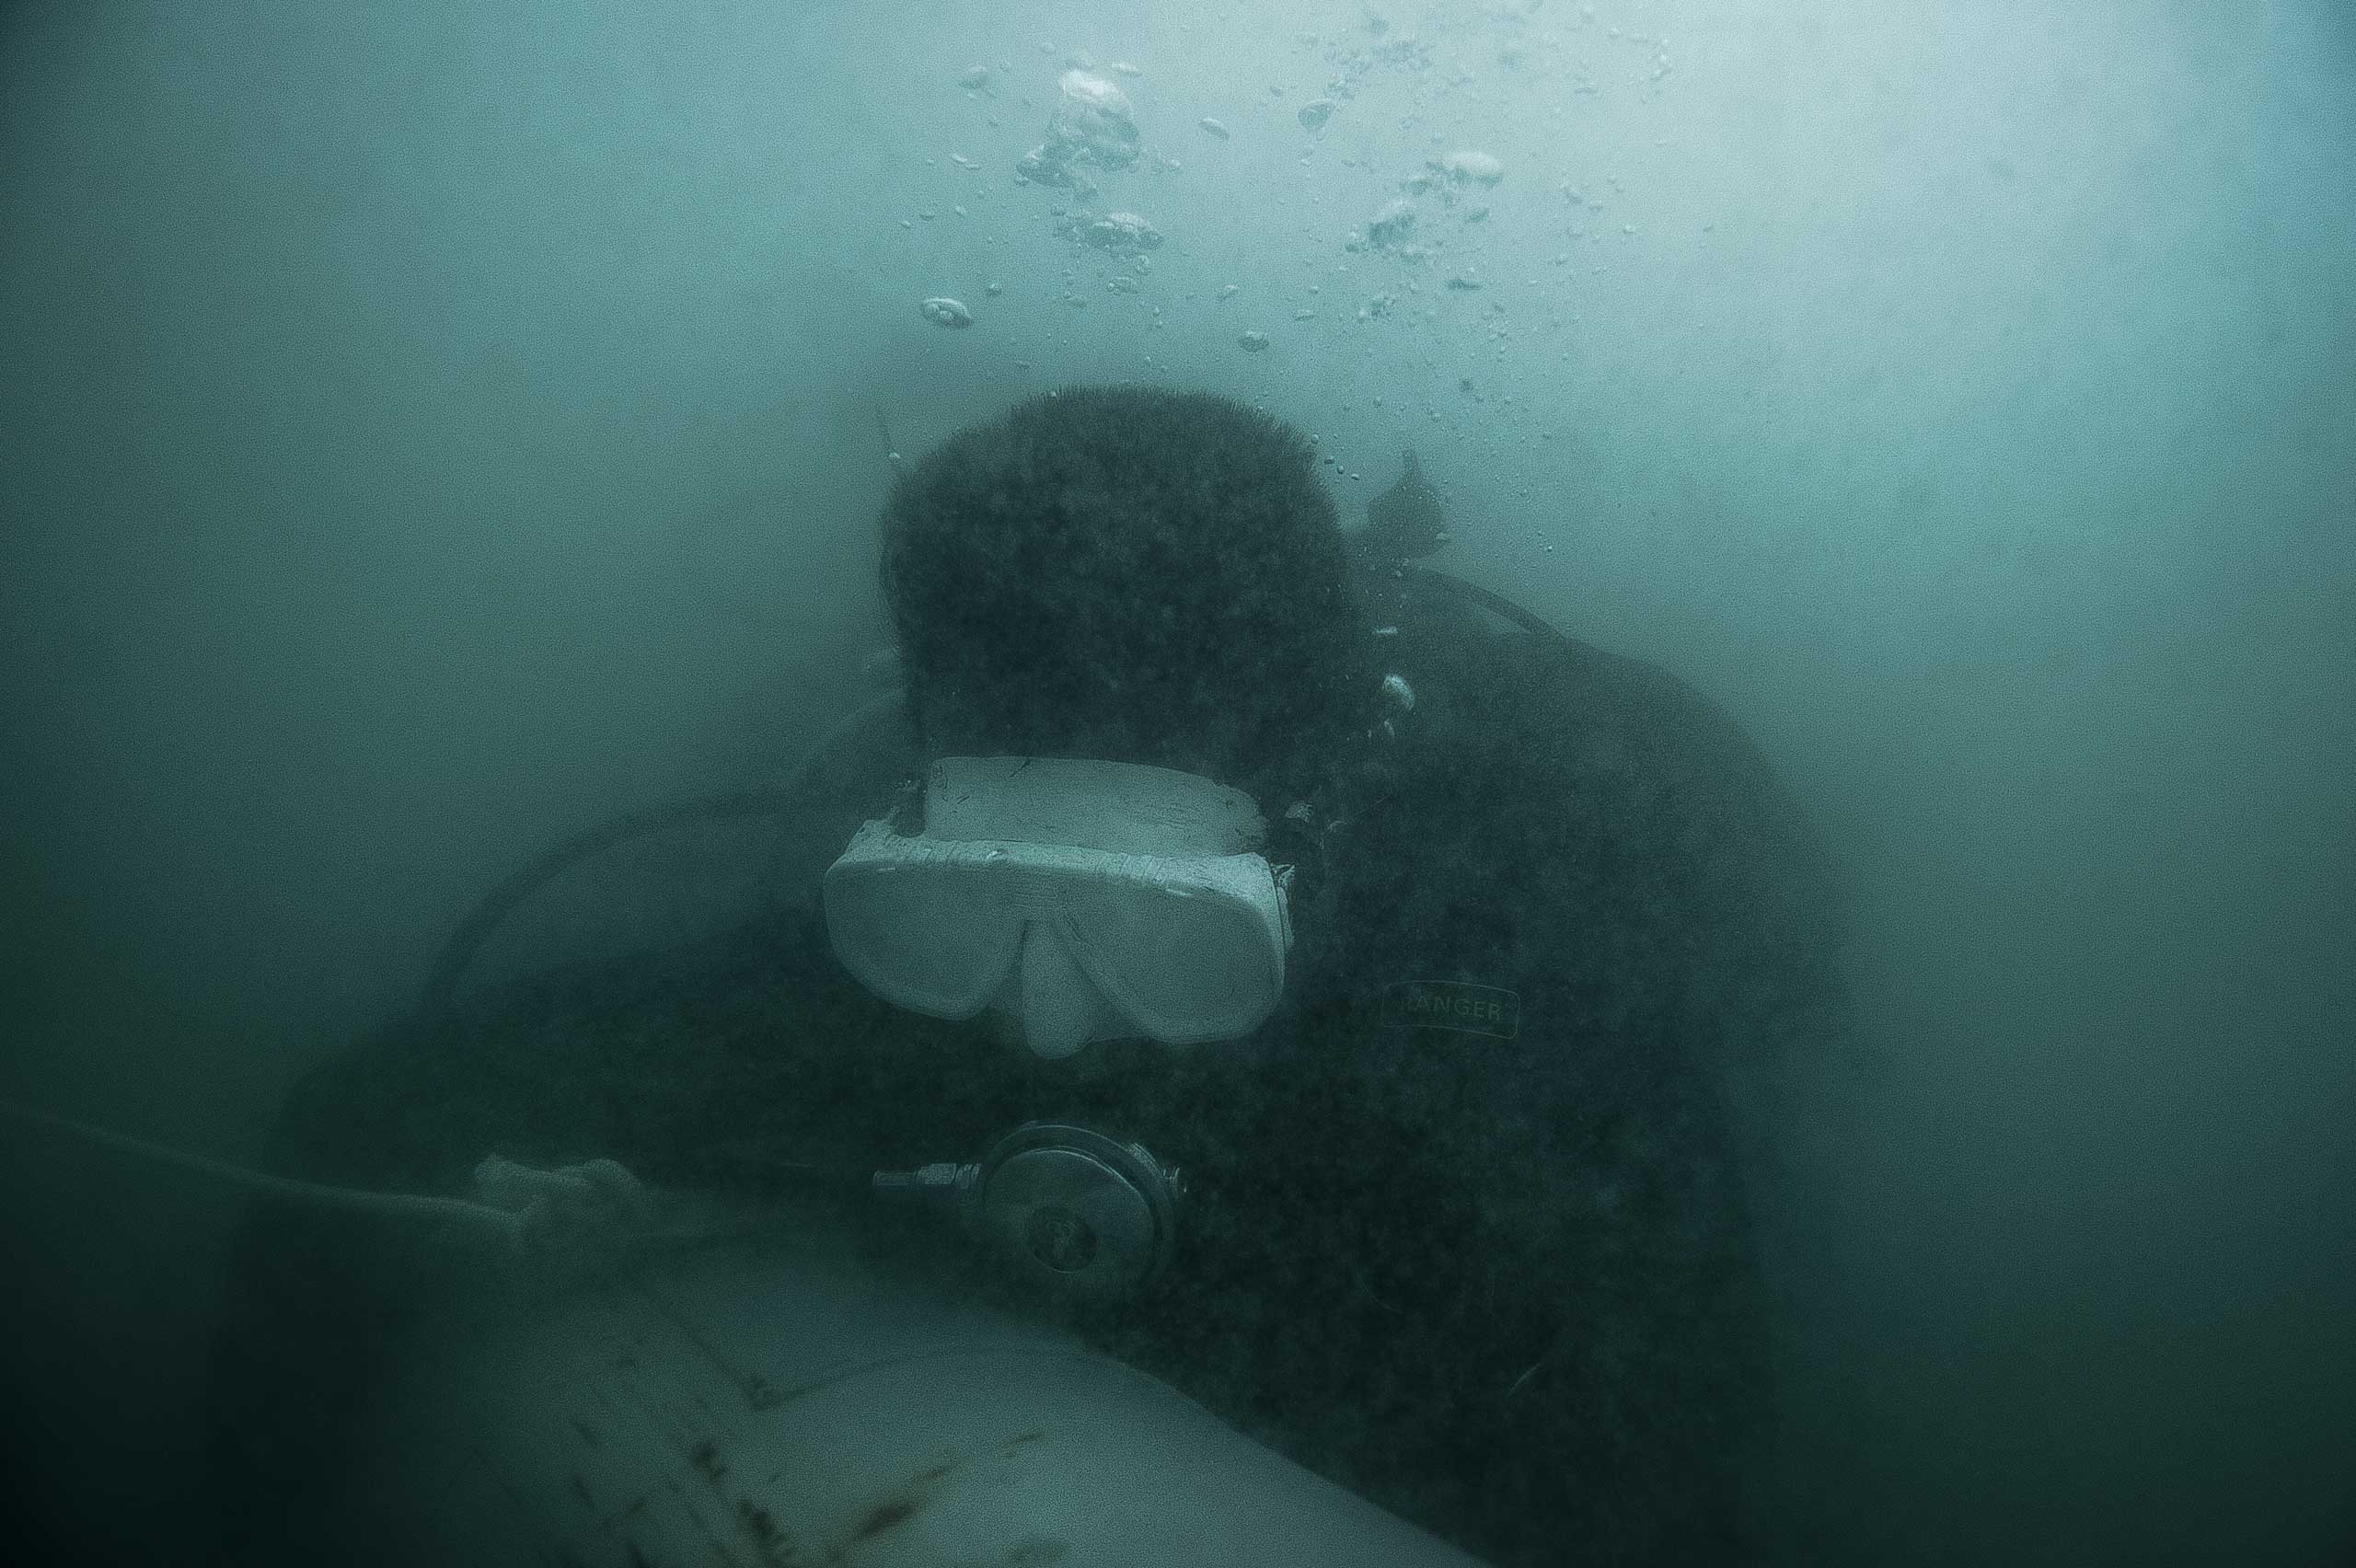 UXO salvage diver Leng Channak, 33, takes part in the training program devised by the USA 7th Engineer Dive Detachment off the coast of Sihanoukville, Cambodia in July 2014. The divers train to identify UXO (inert for training purposes), wearing 'black-out' masks to simulate the zero visibility they will encounter in the rivers and lakes of Cambodia.